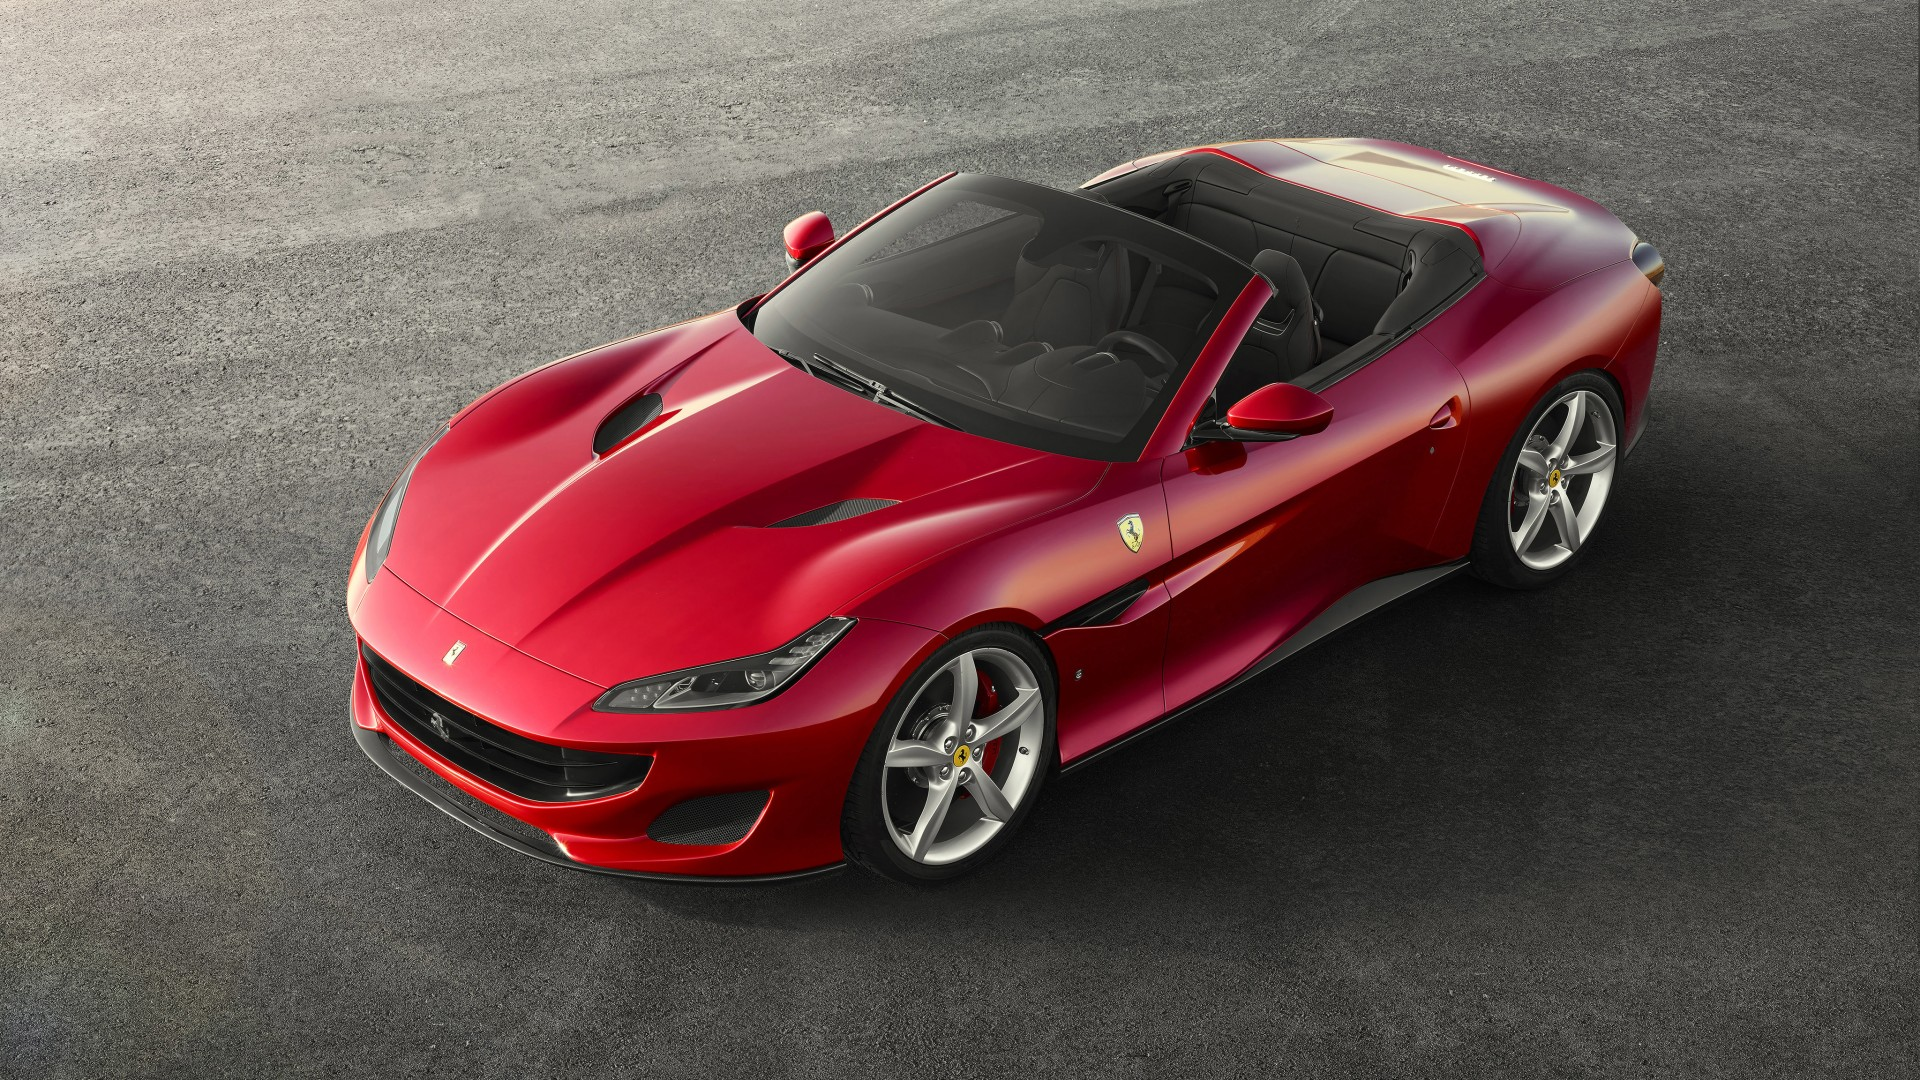 Ferrari Portofino 2018 4k Wallpaper Hd Car Wallpapers